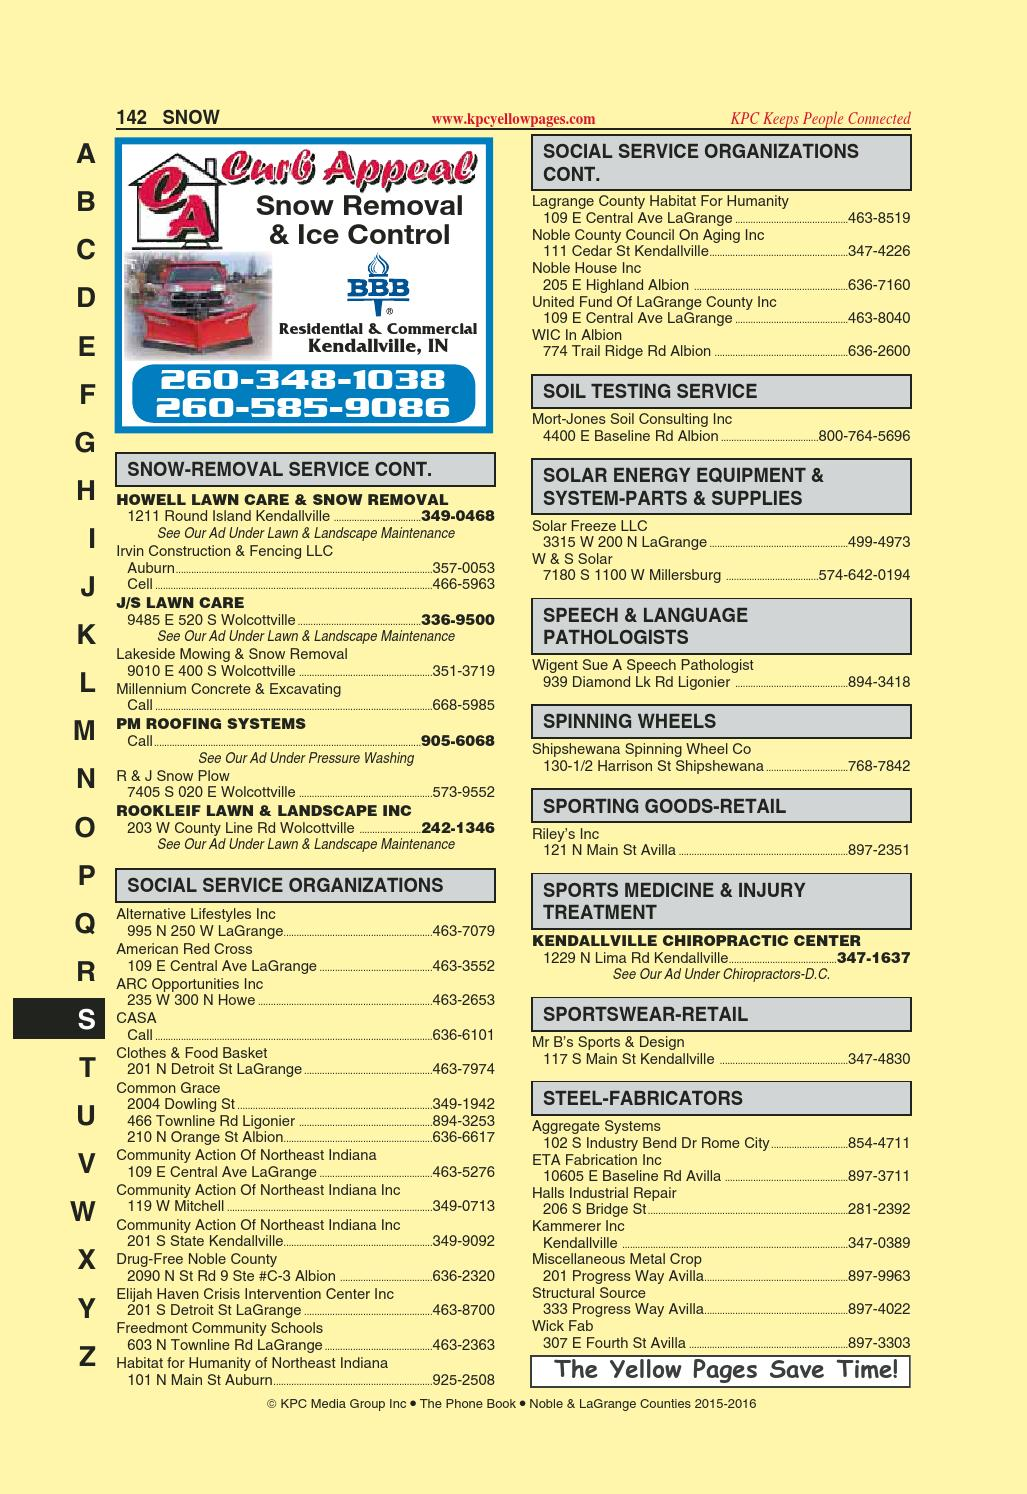 Yellow Pages Noble And Lagrange Counties 2015 2016 By Kpc Media Group